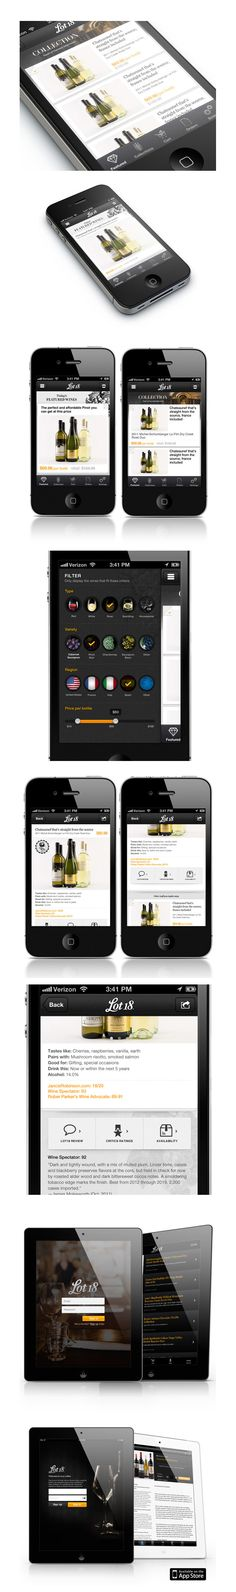 Lot18 Wine Application for iPhone/Pad. Excellent typography, clean design.